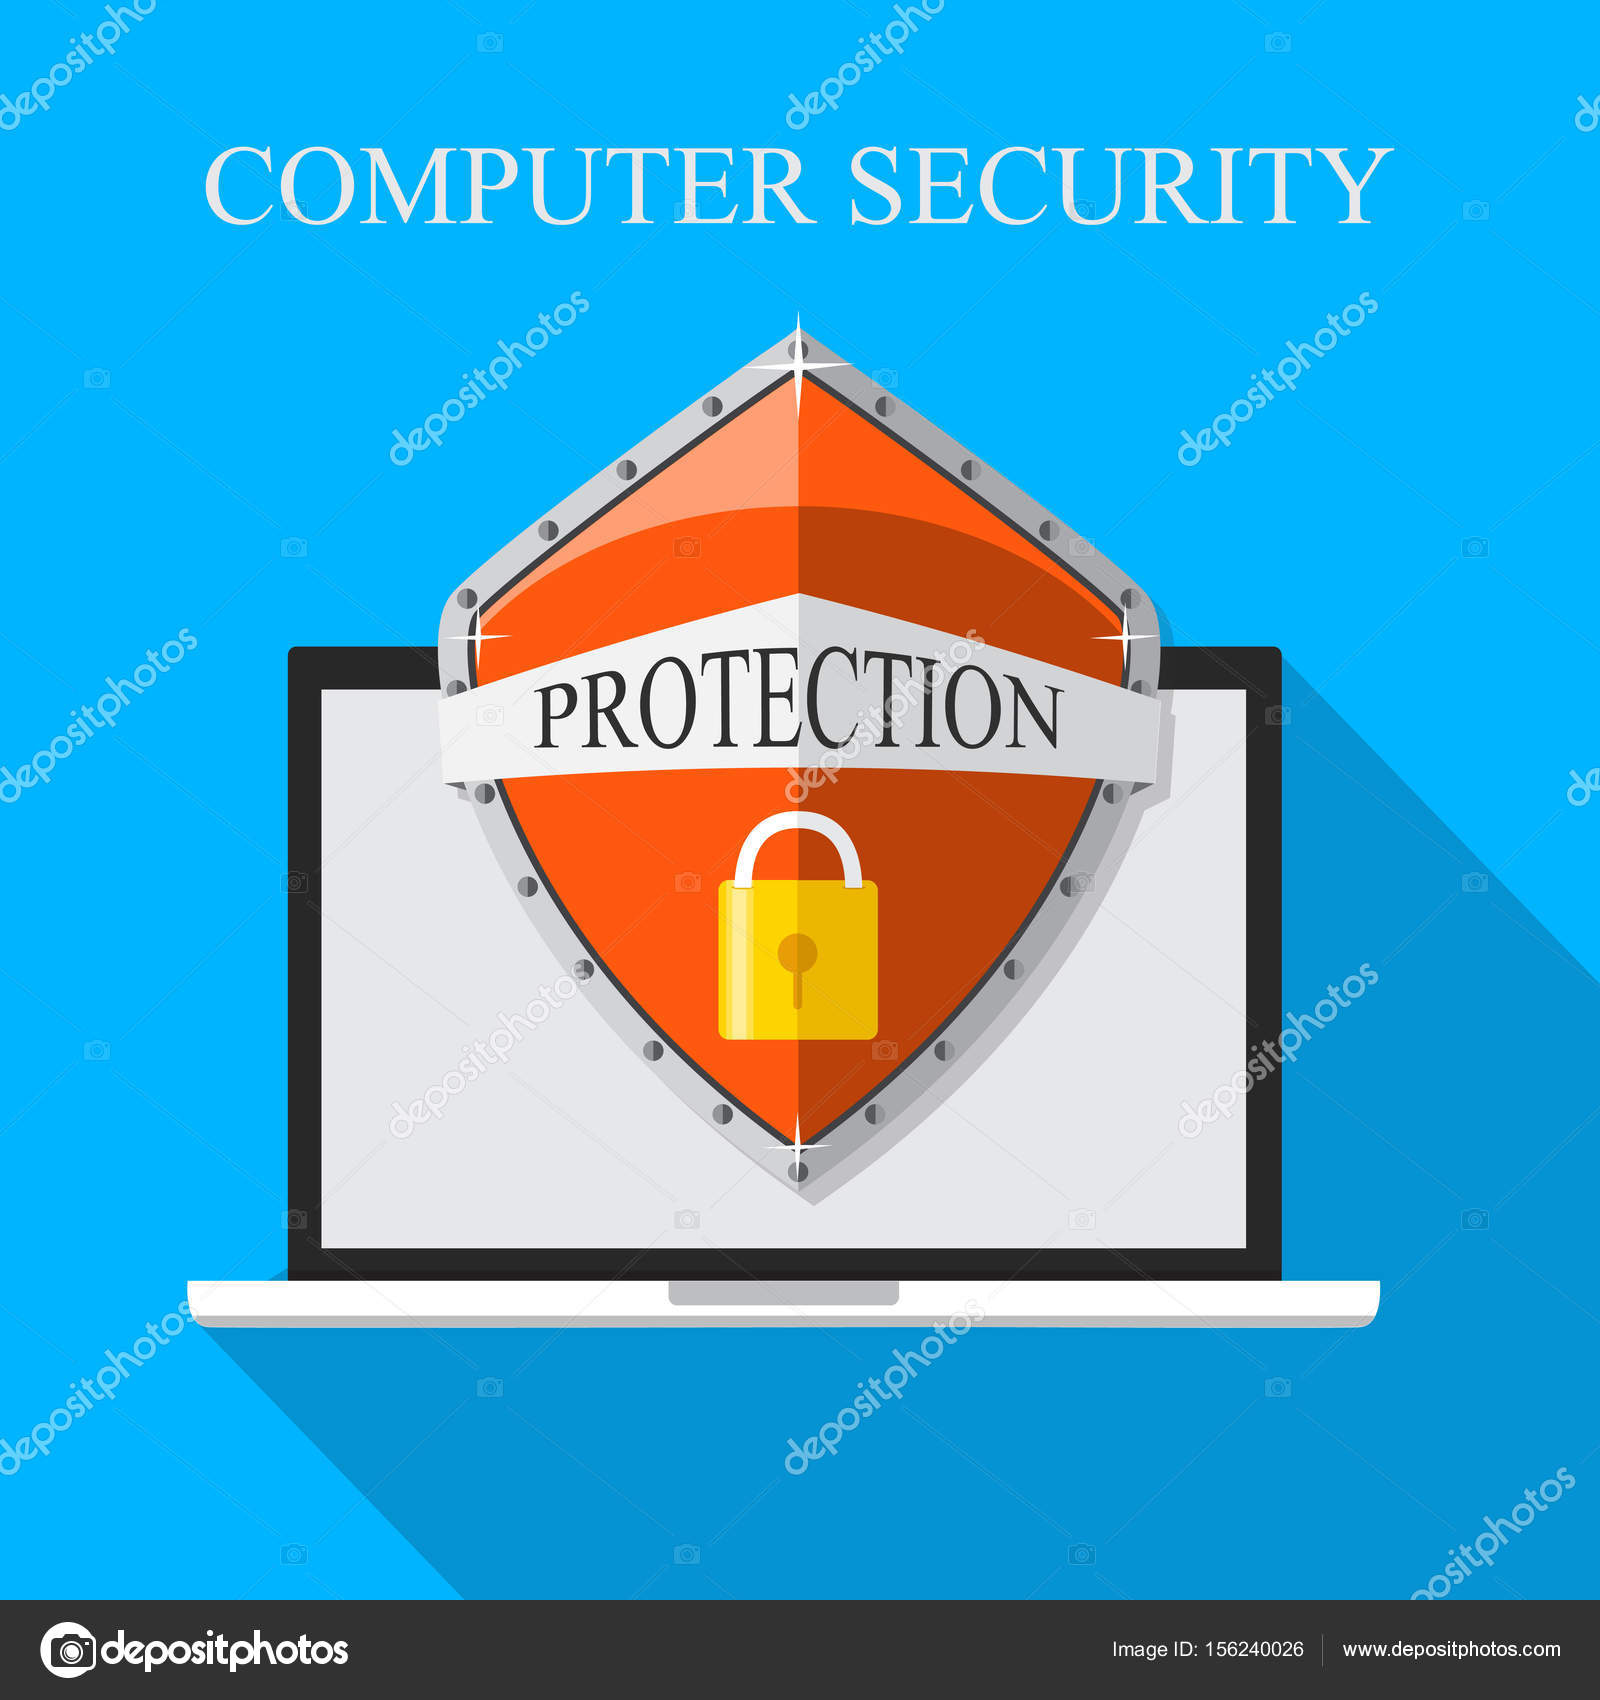 Computer security, security center, online safety, data